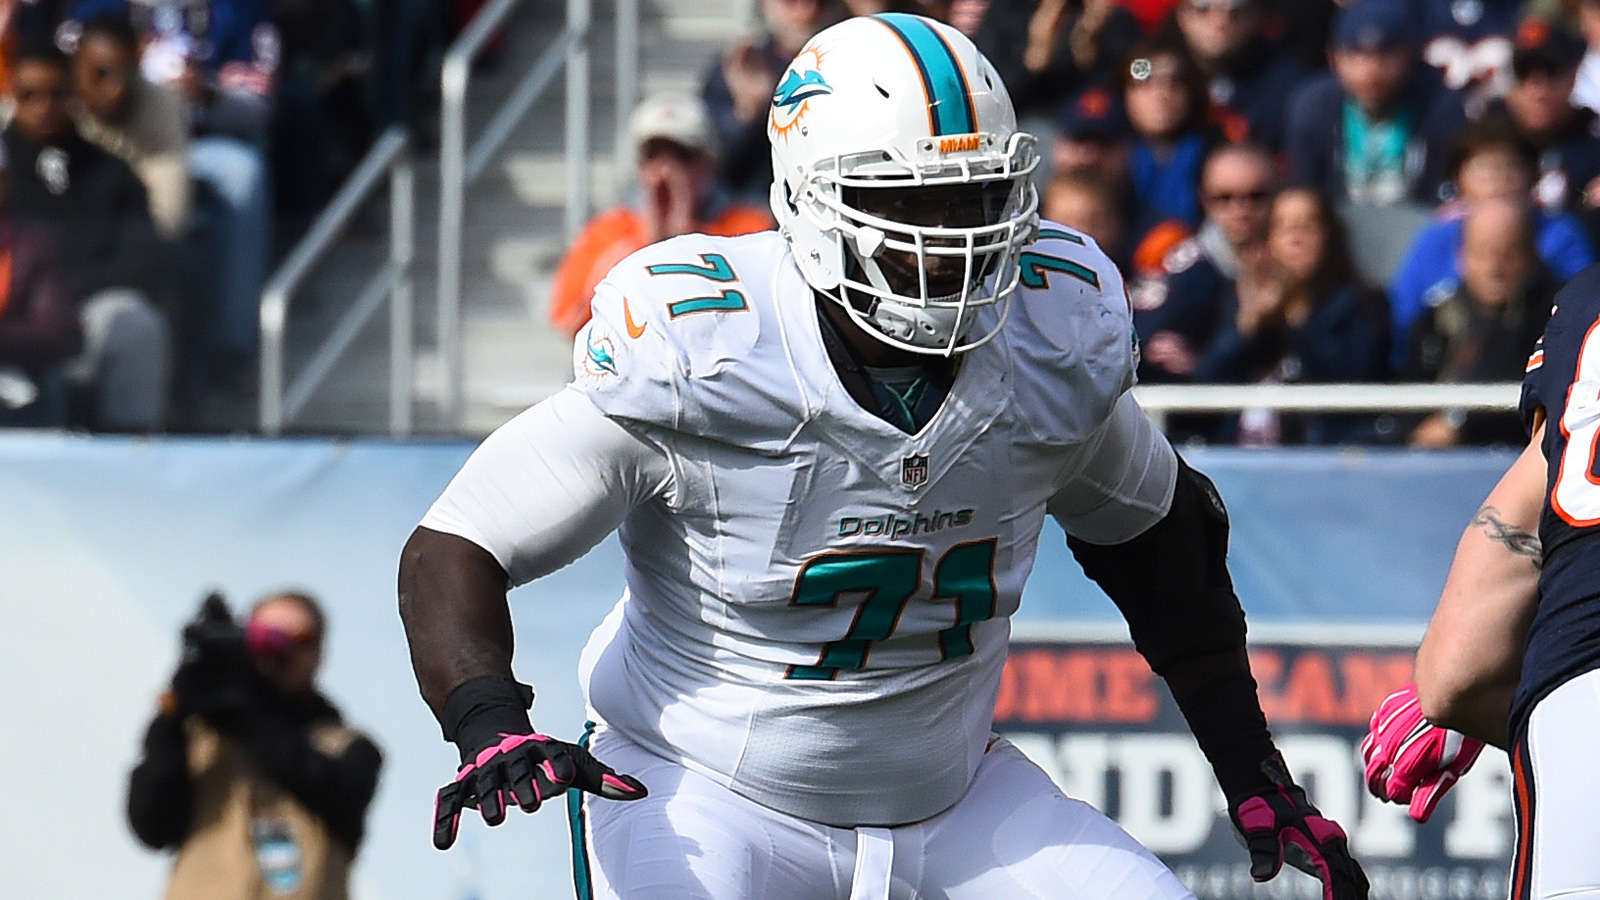 Miami Dolphins set to release Branden Albert and Mario Williams